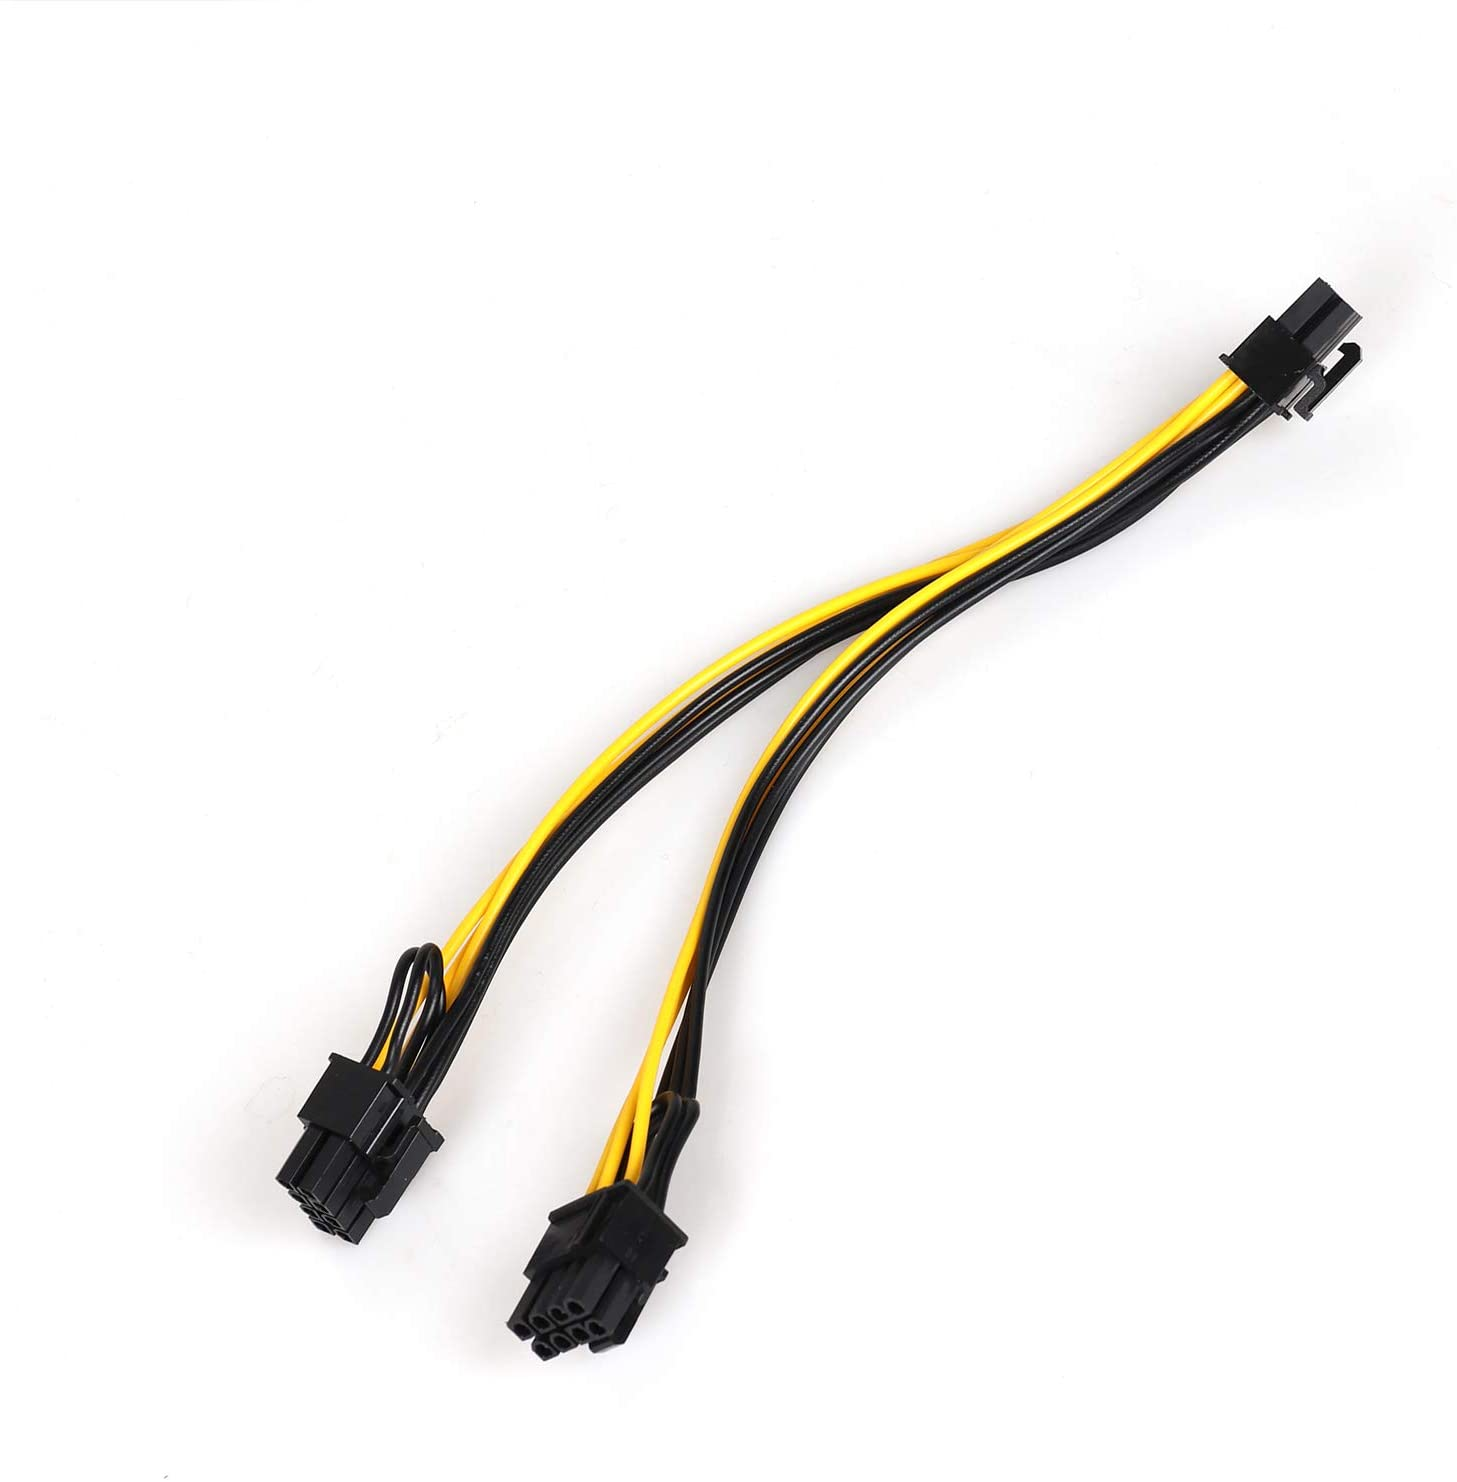 bslemon charger cable 6 pin male to dual 8 6 2 pin male pcie gpu power connector converter power cable pcie extender cable BsLemon Charger  Cable 6 Pin Male to Dual 8 (6+2) Pin Male PCIE GPU Power Connector Converter Power Cable PCIE Extender Cable